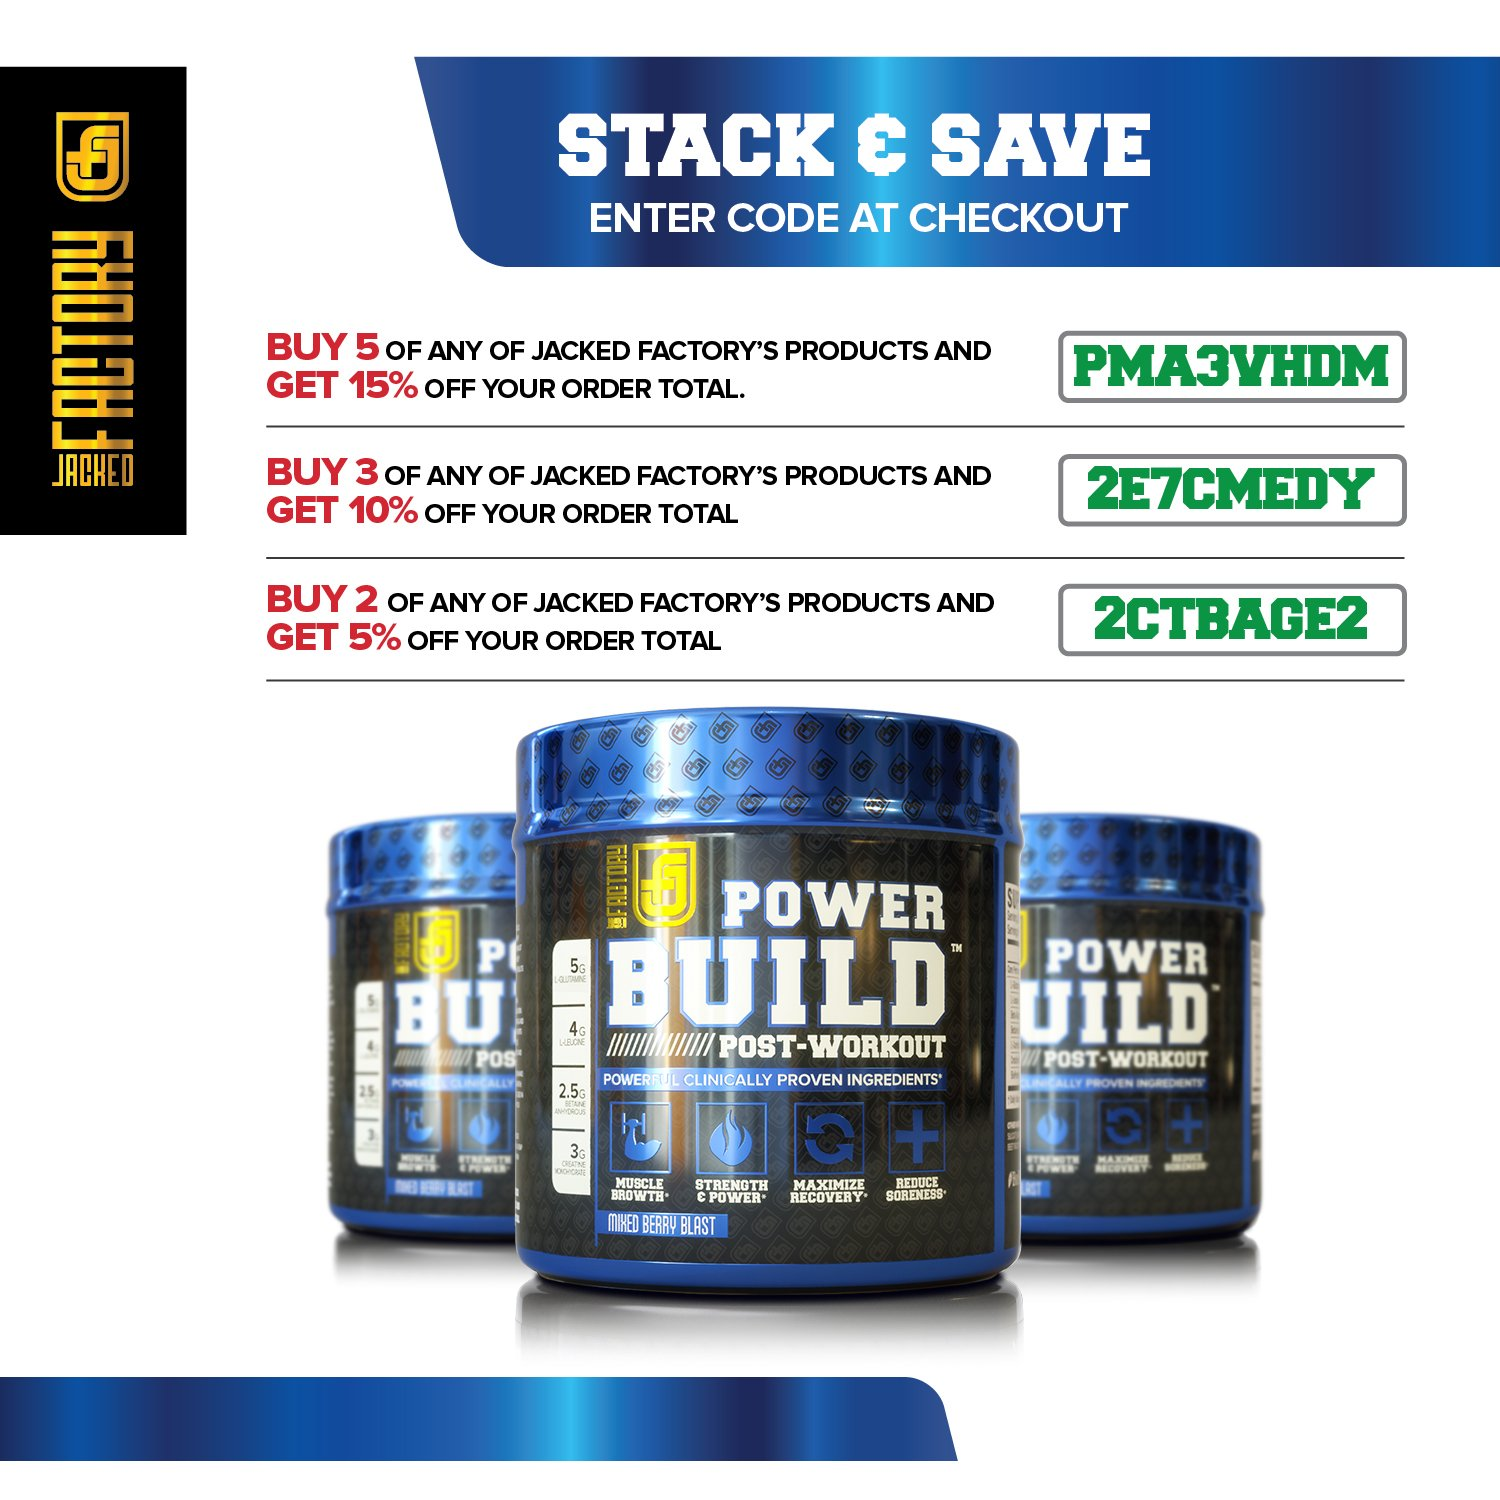 Pre order code recovery form - Amazon Com Powerbuild Clinically Dosed Post Workout Recovery Muscle Building Supplement Boost Muscle Growth Recovery Strength Creatine